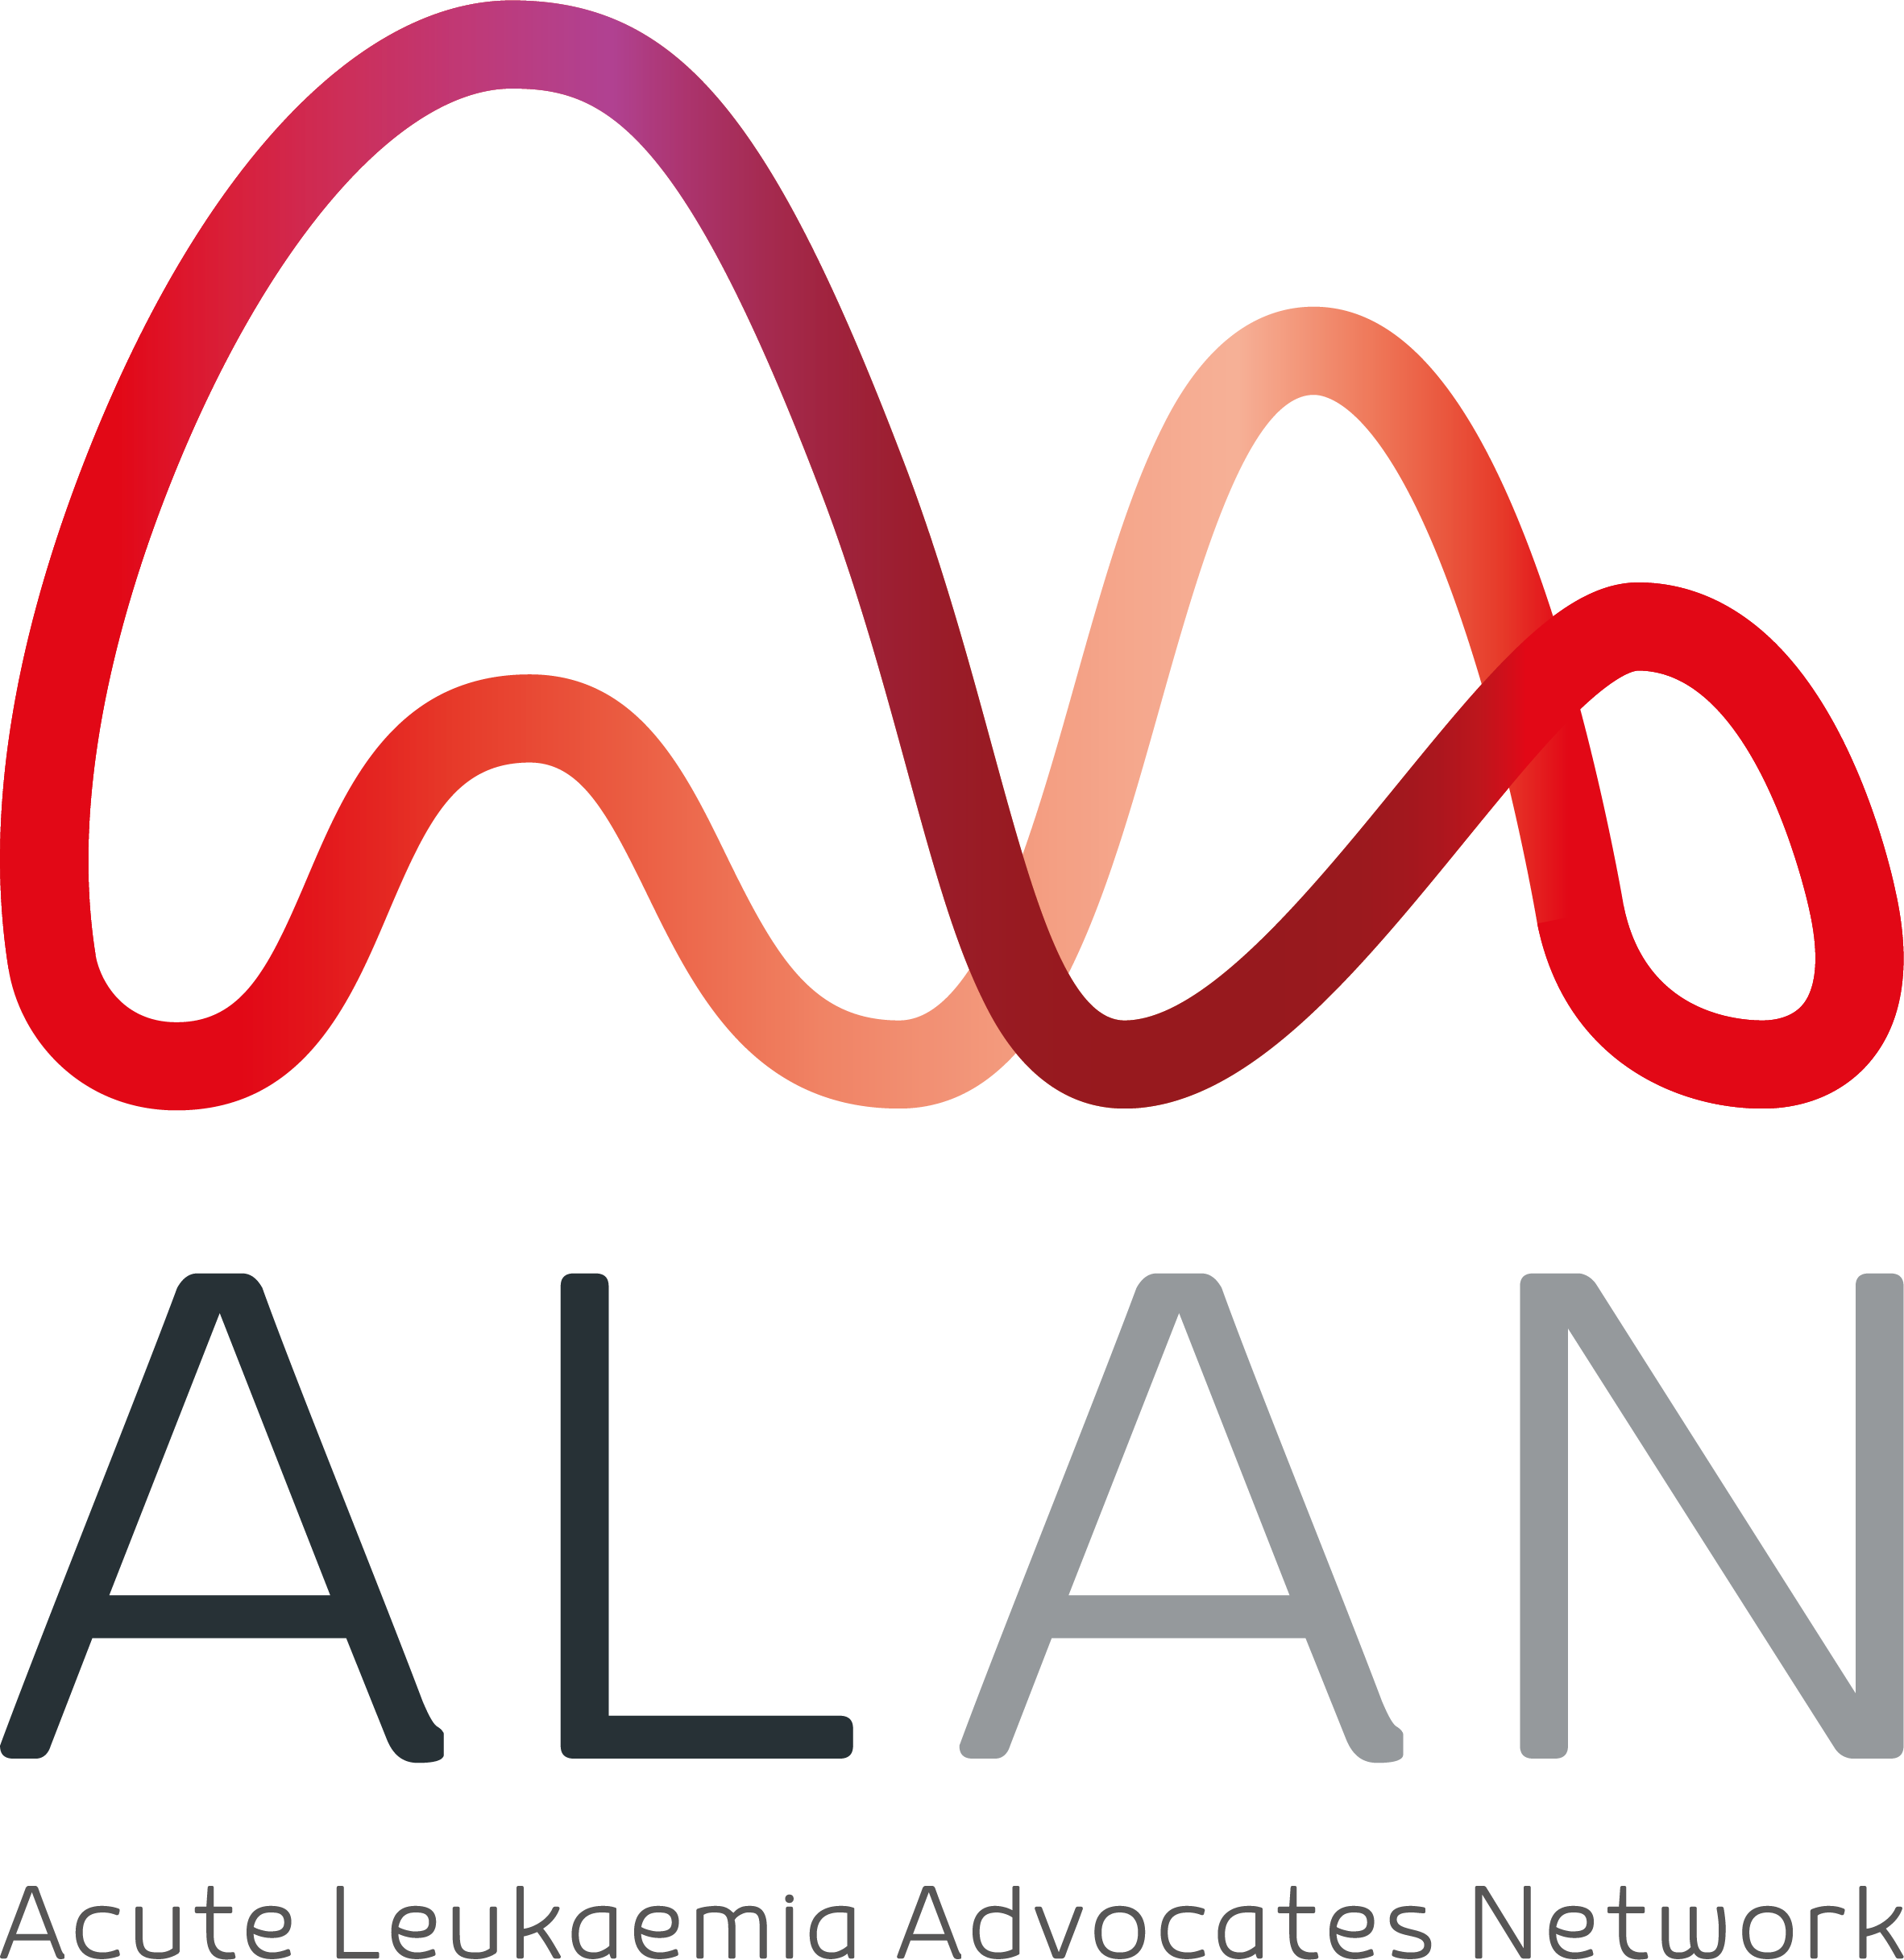 Acute Leukemia Advocates Network